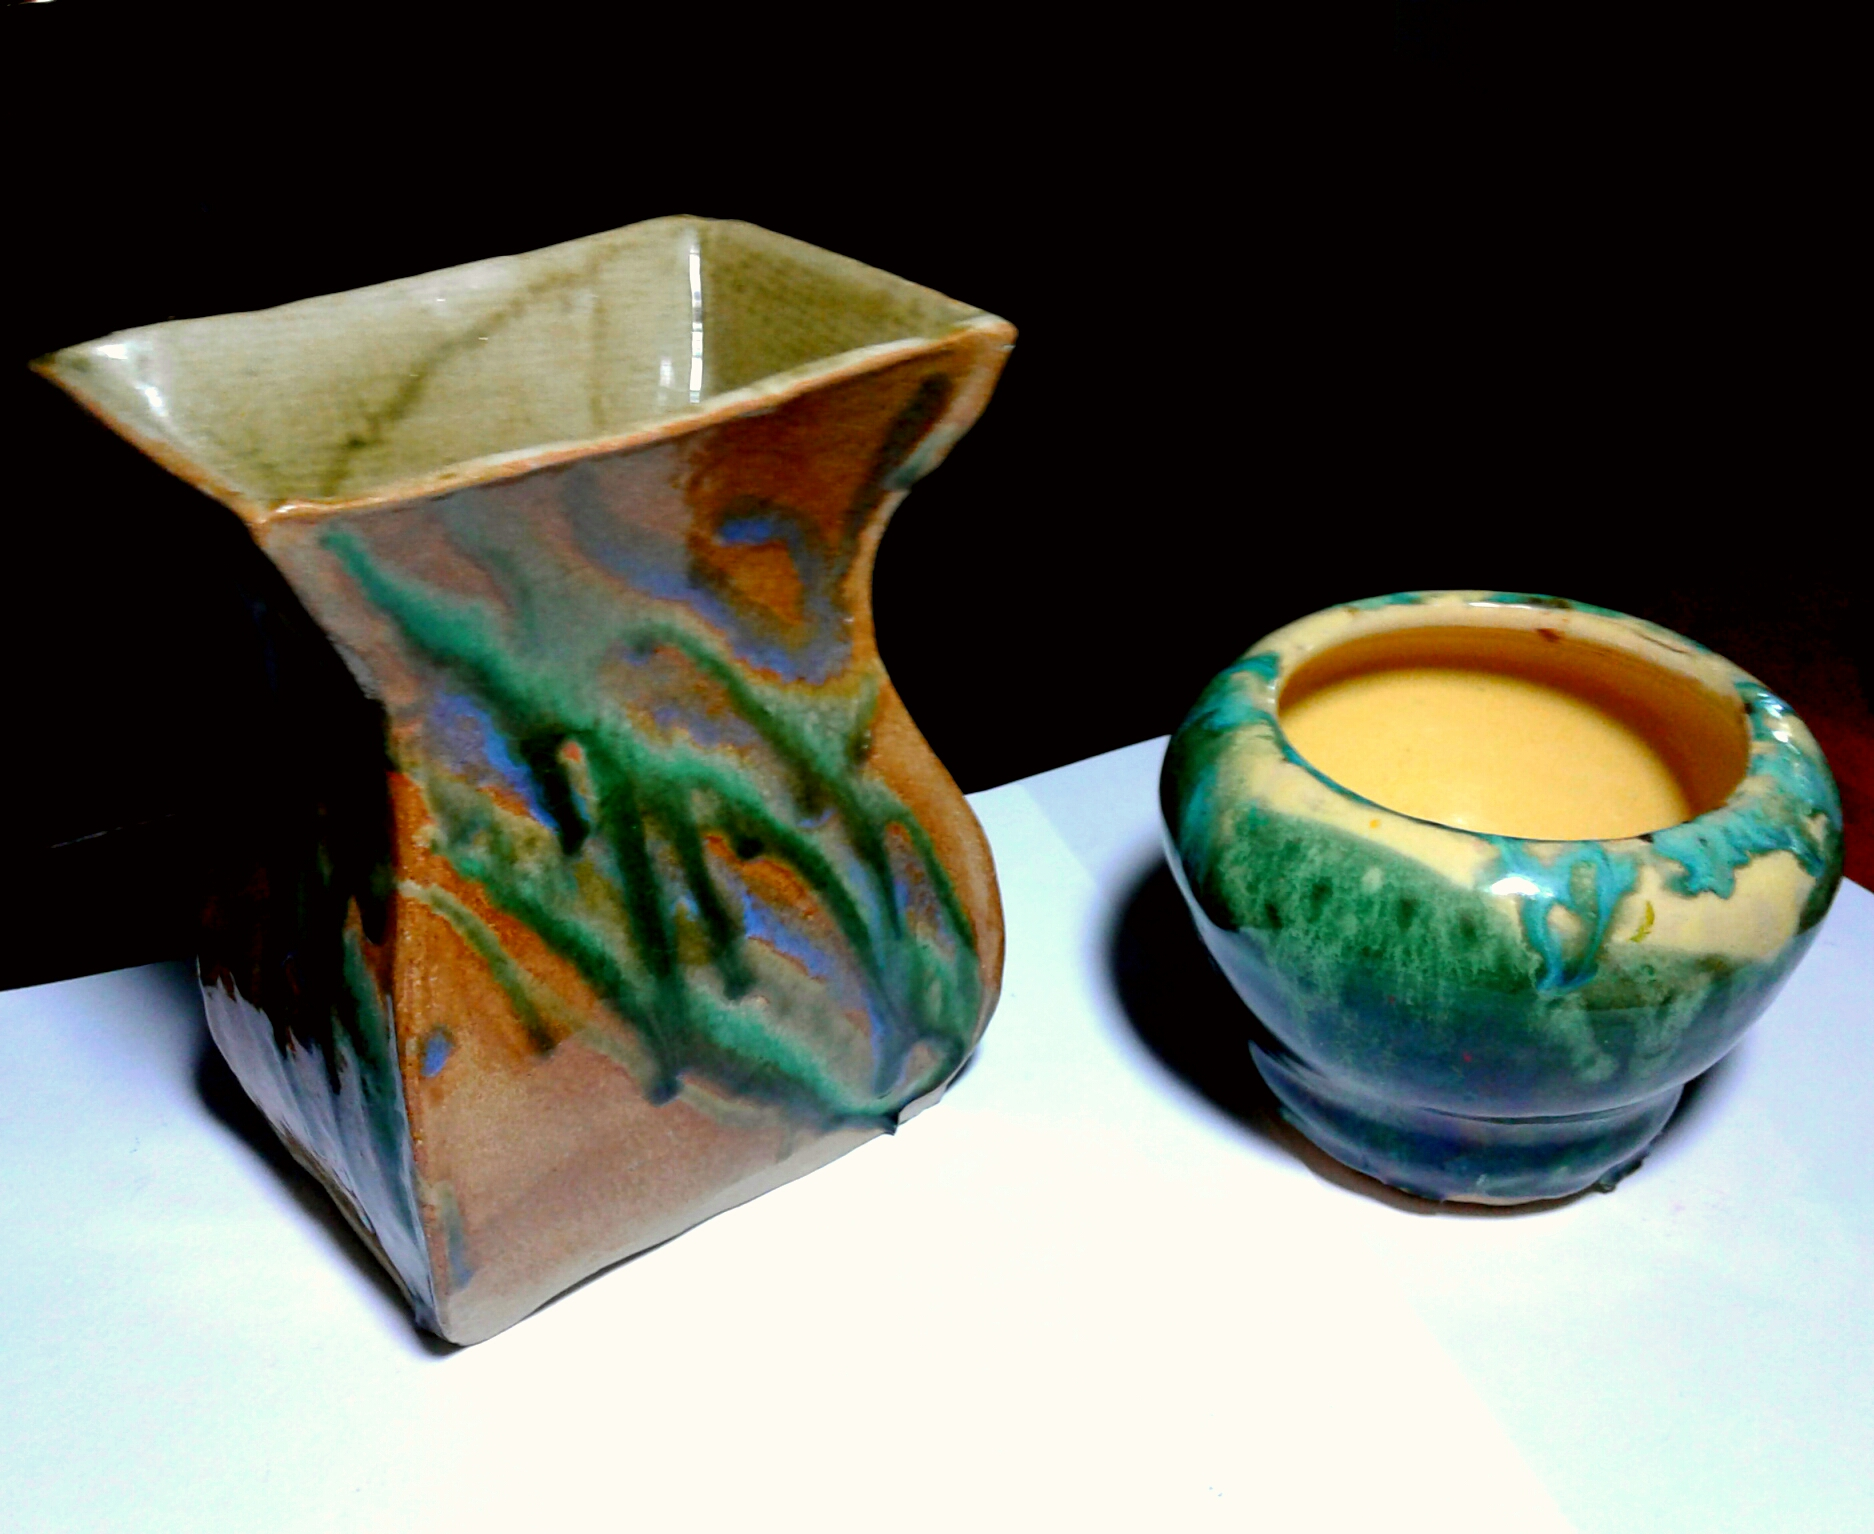 vase clay from pattern and wheel thrown.jpg